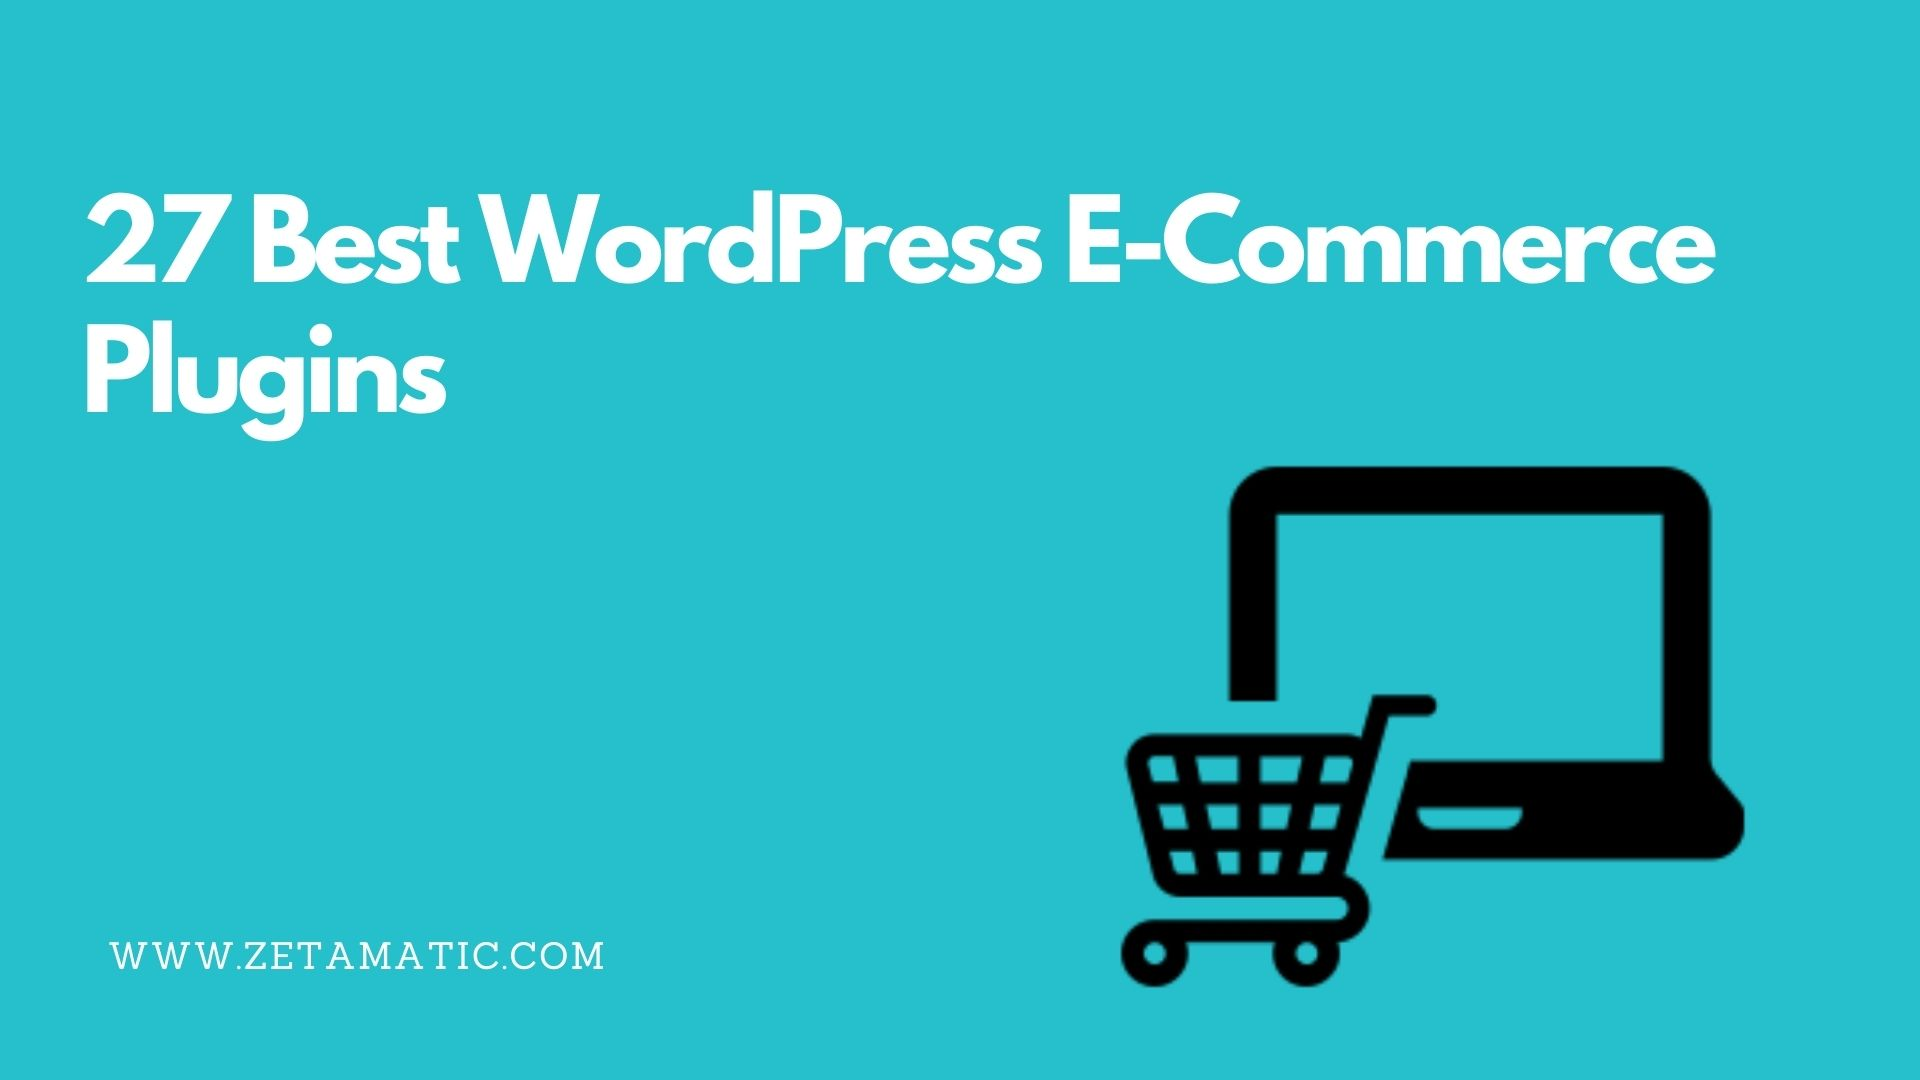 NEW! 27 Best WordPress E-Commerce Plugins